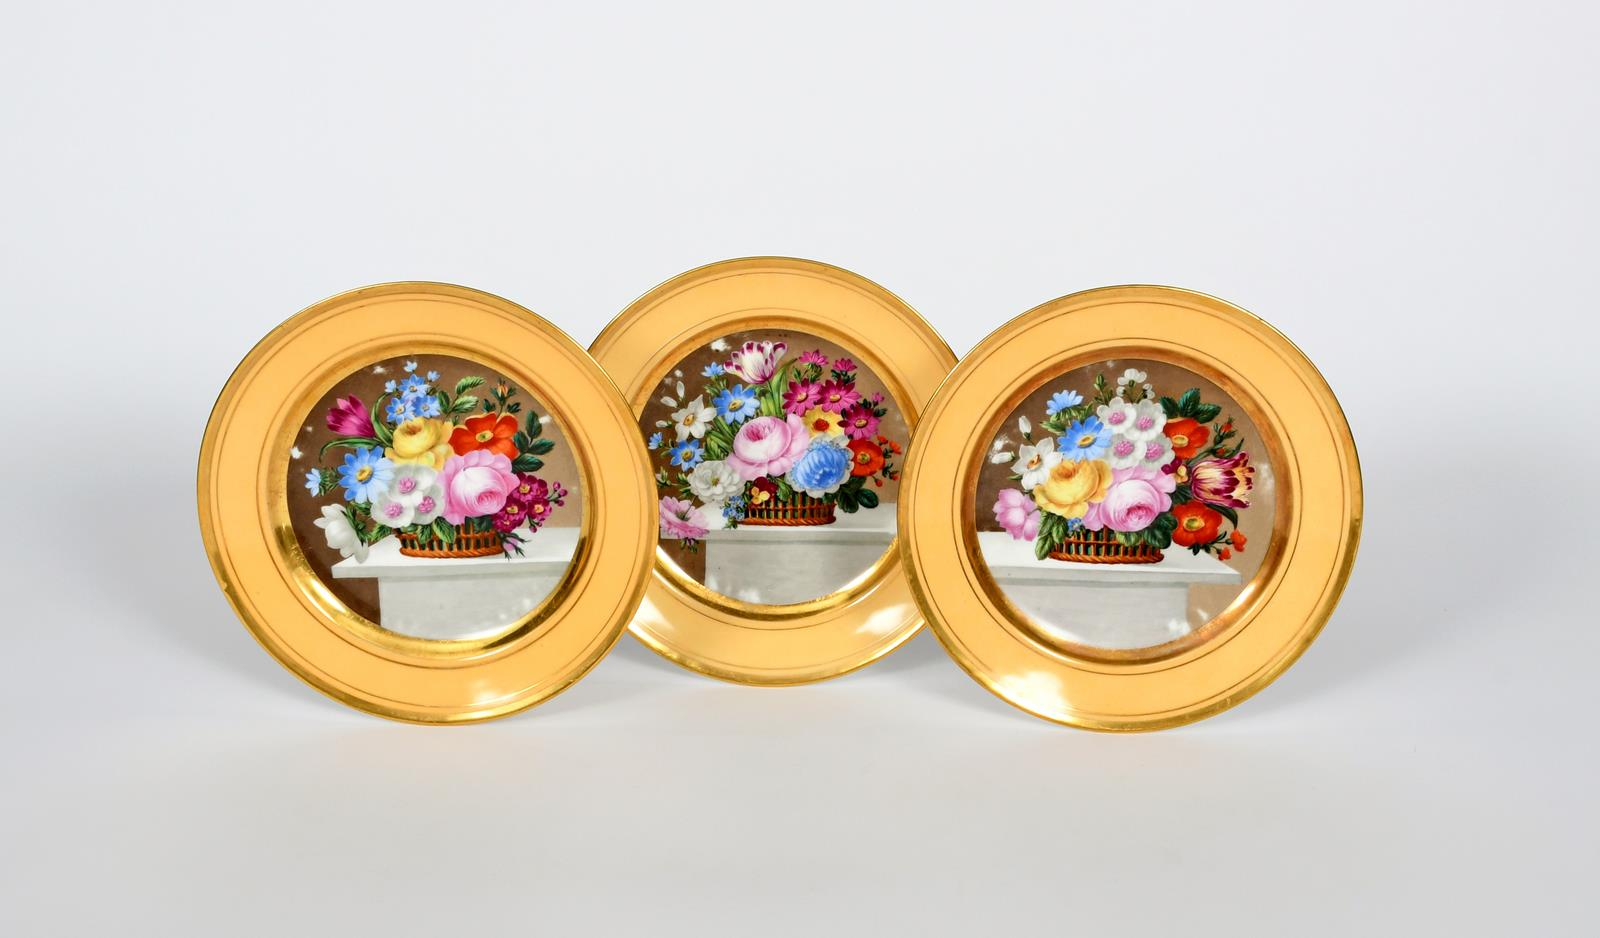 Lot 496 - Three Paris porcelain plates, 19th century, each painted with a basket of flowers including rose,